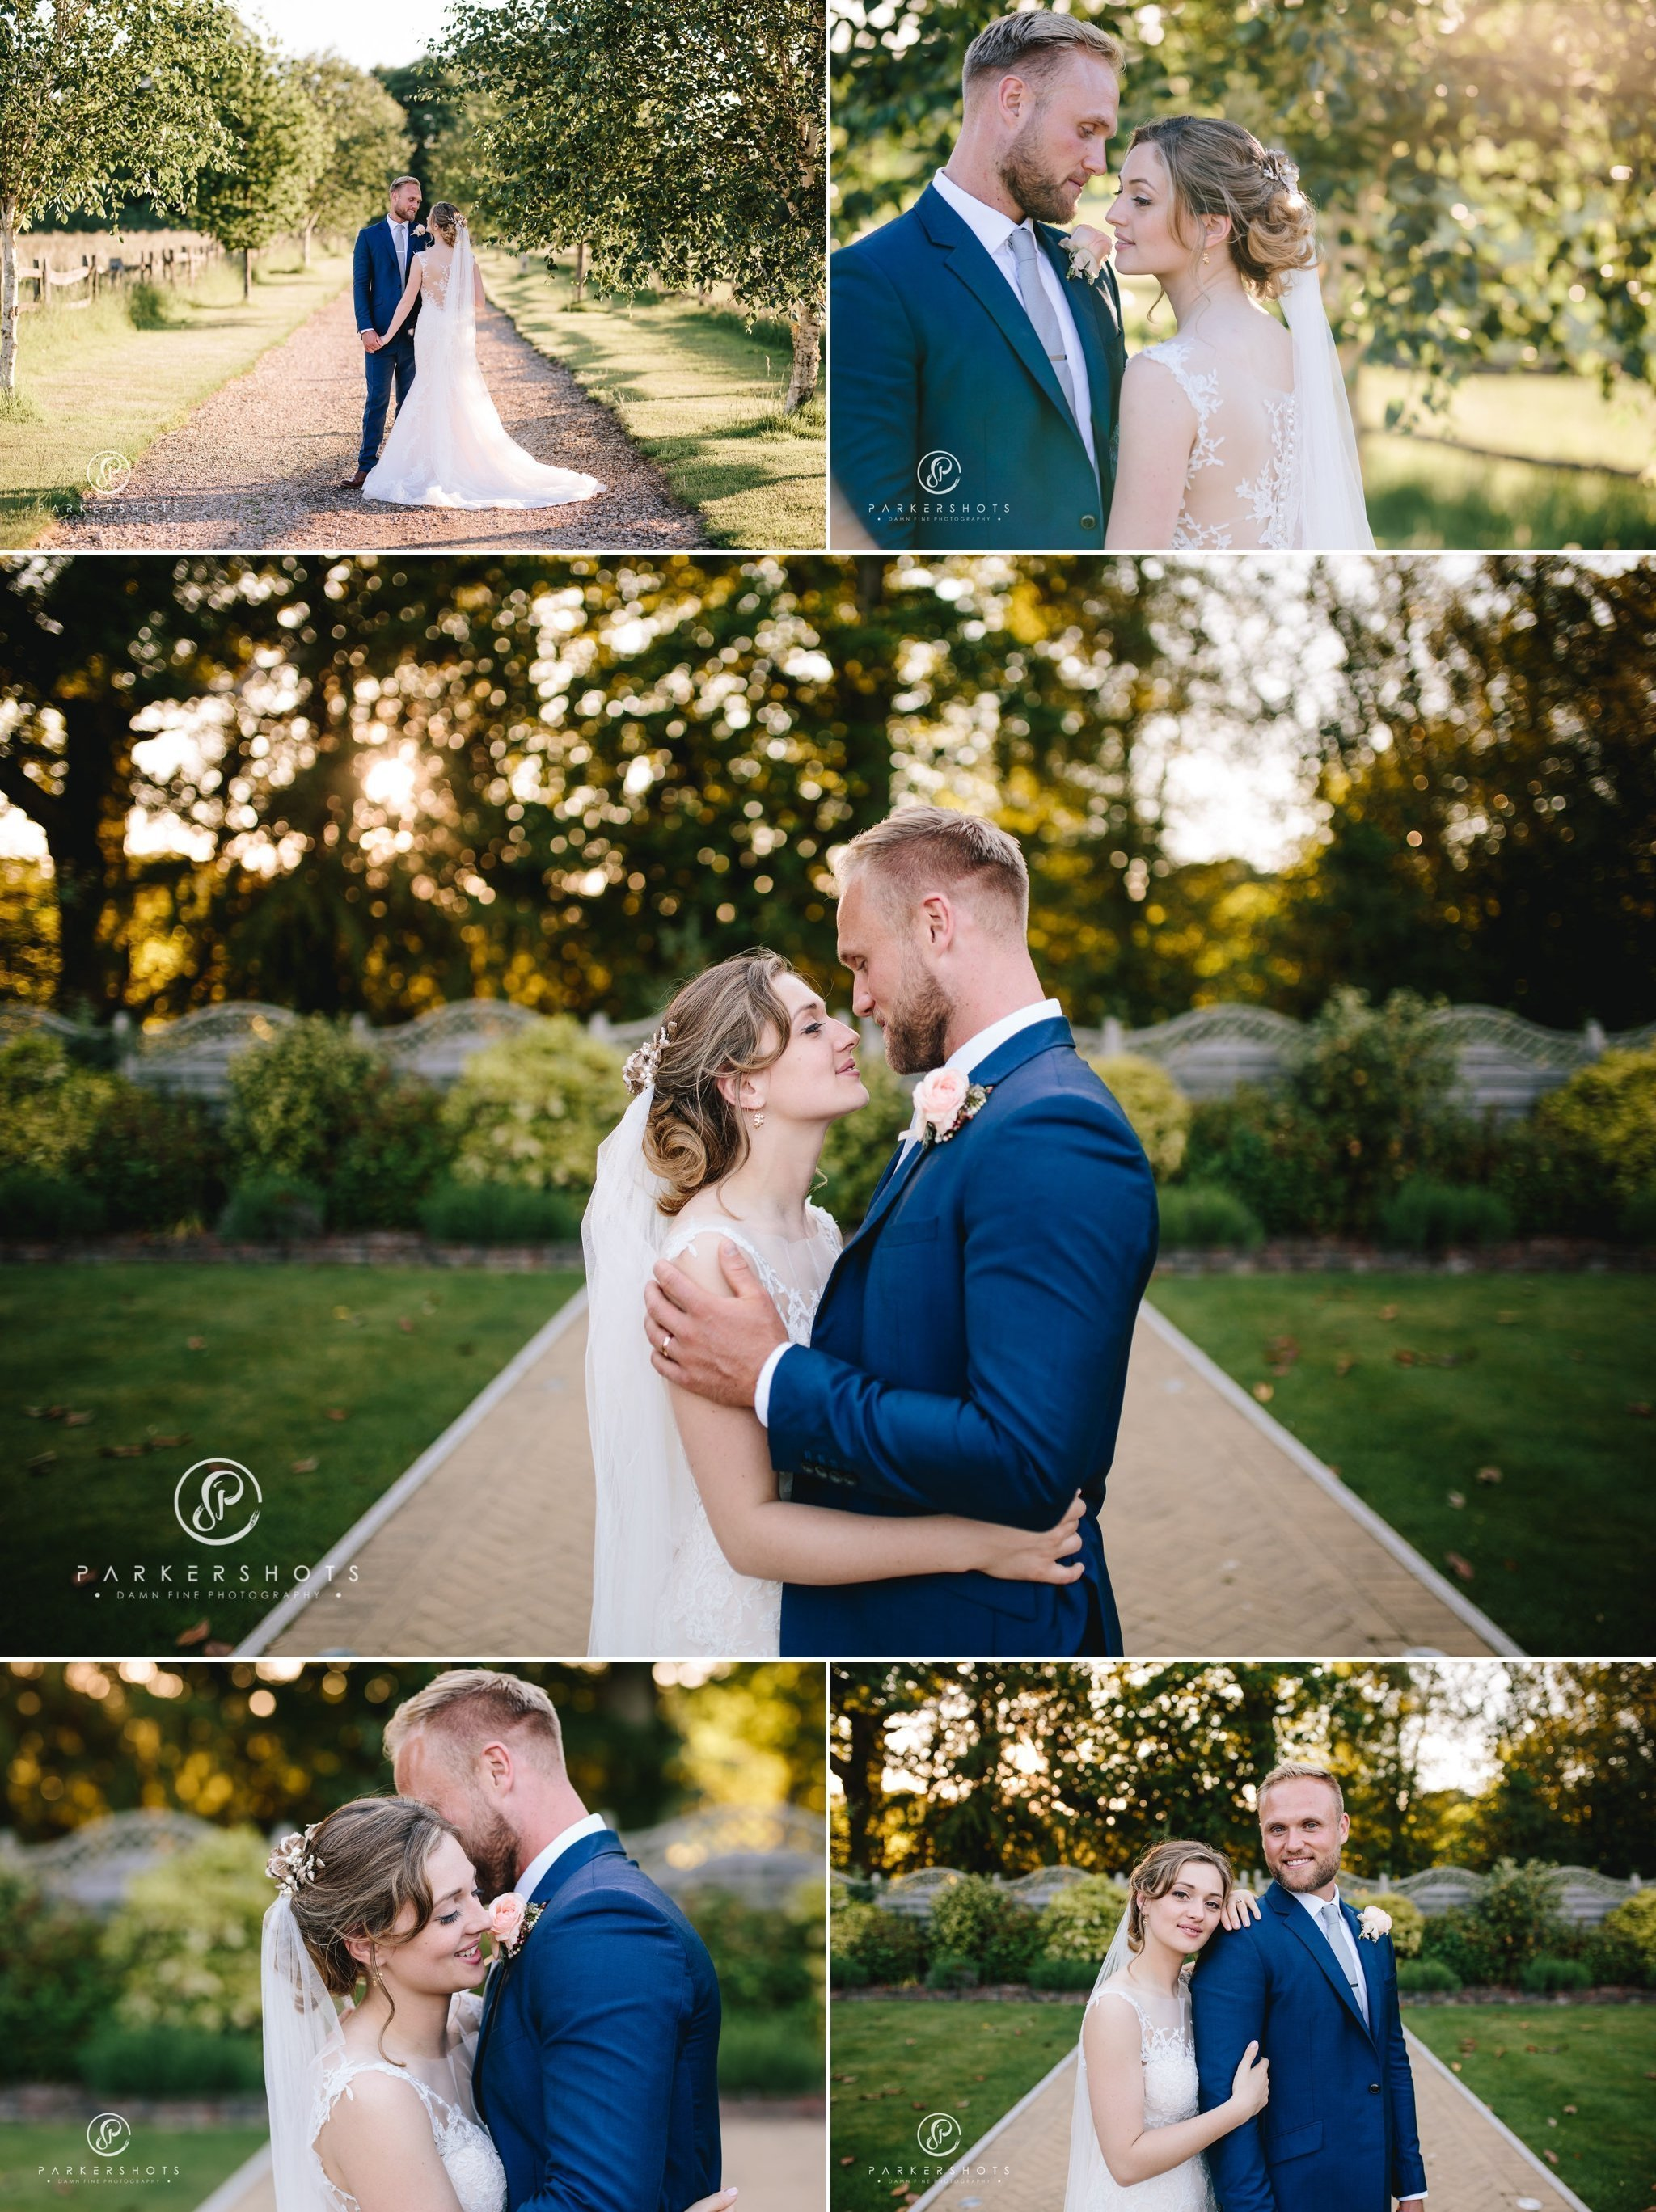 alternative wedding photography at Northbrook Park